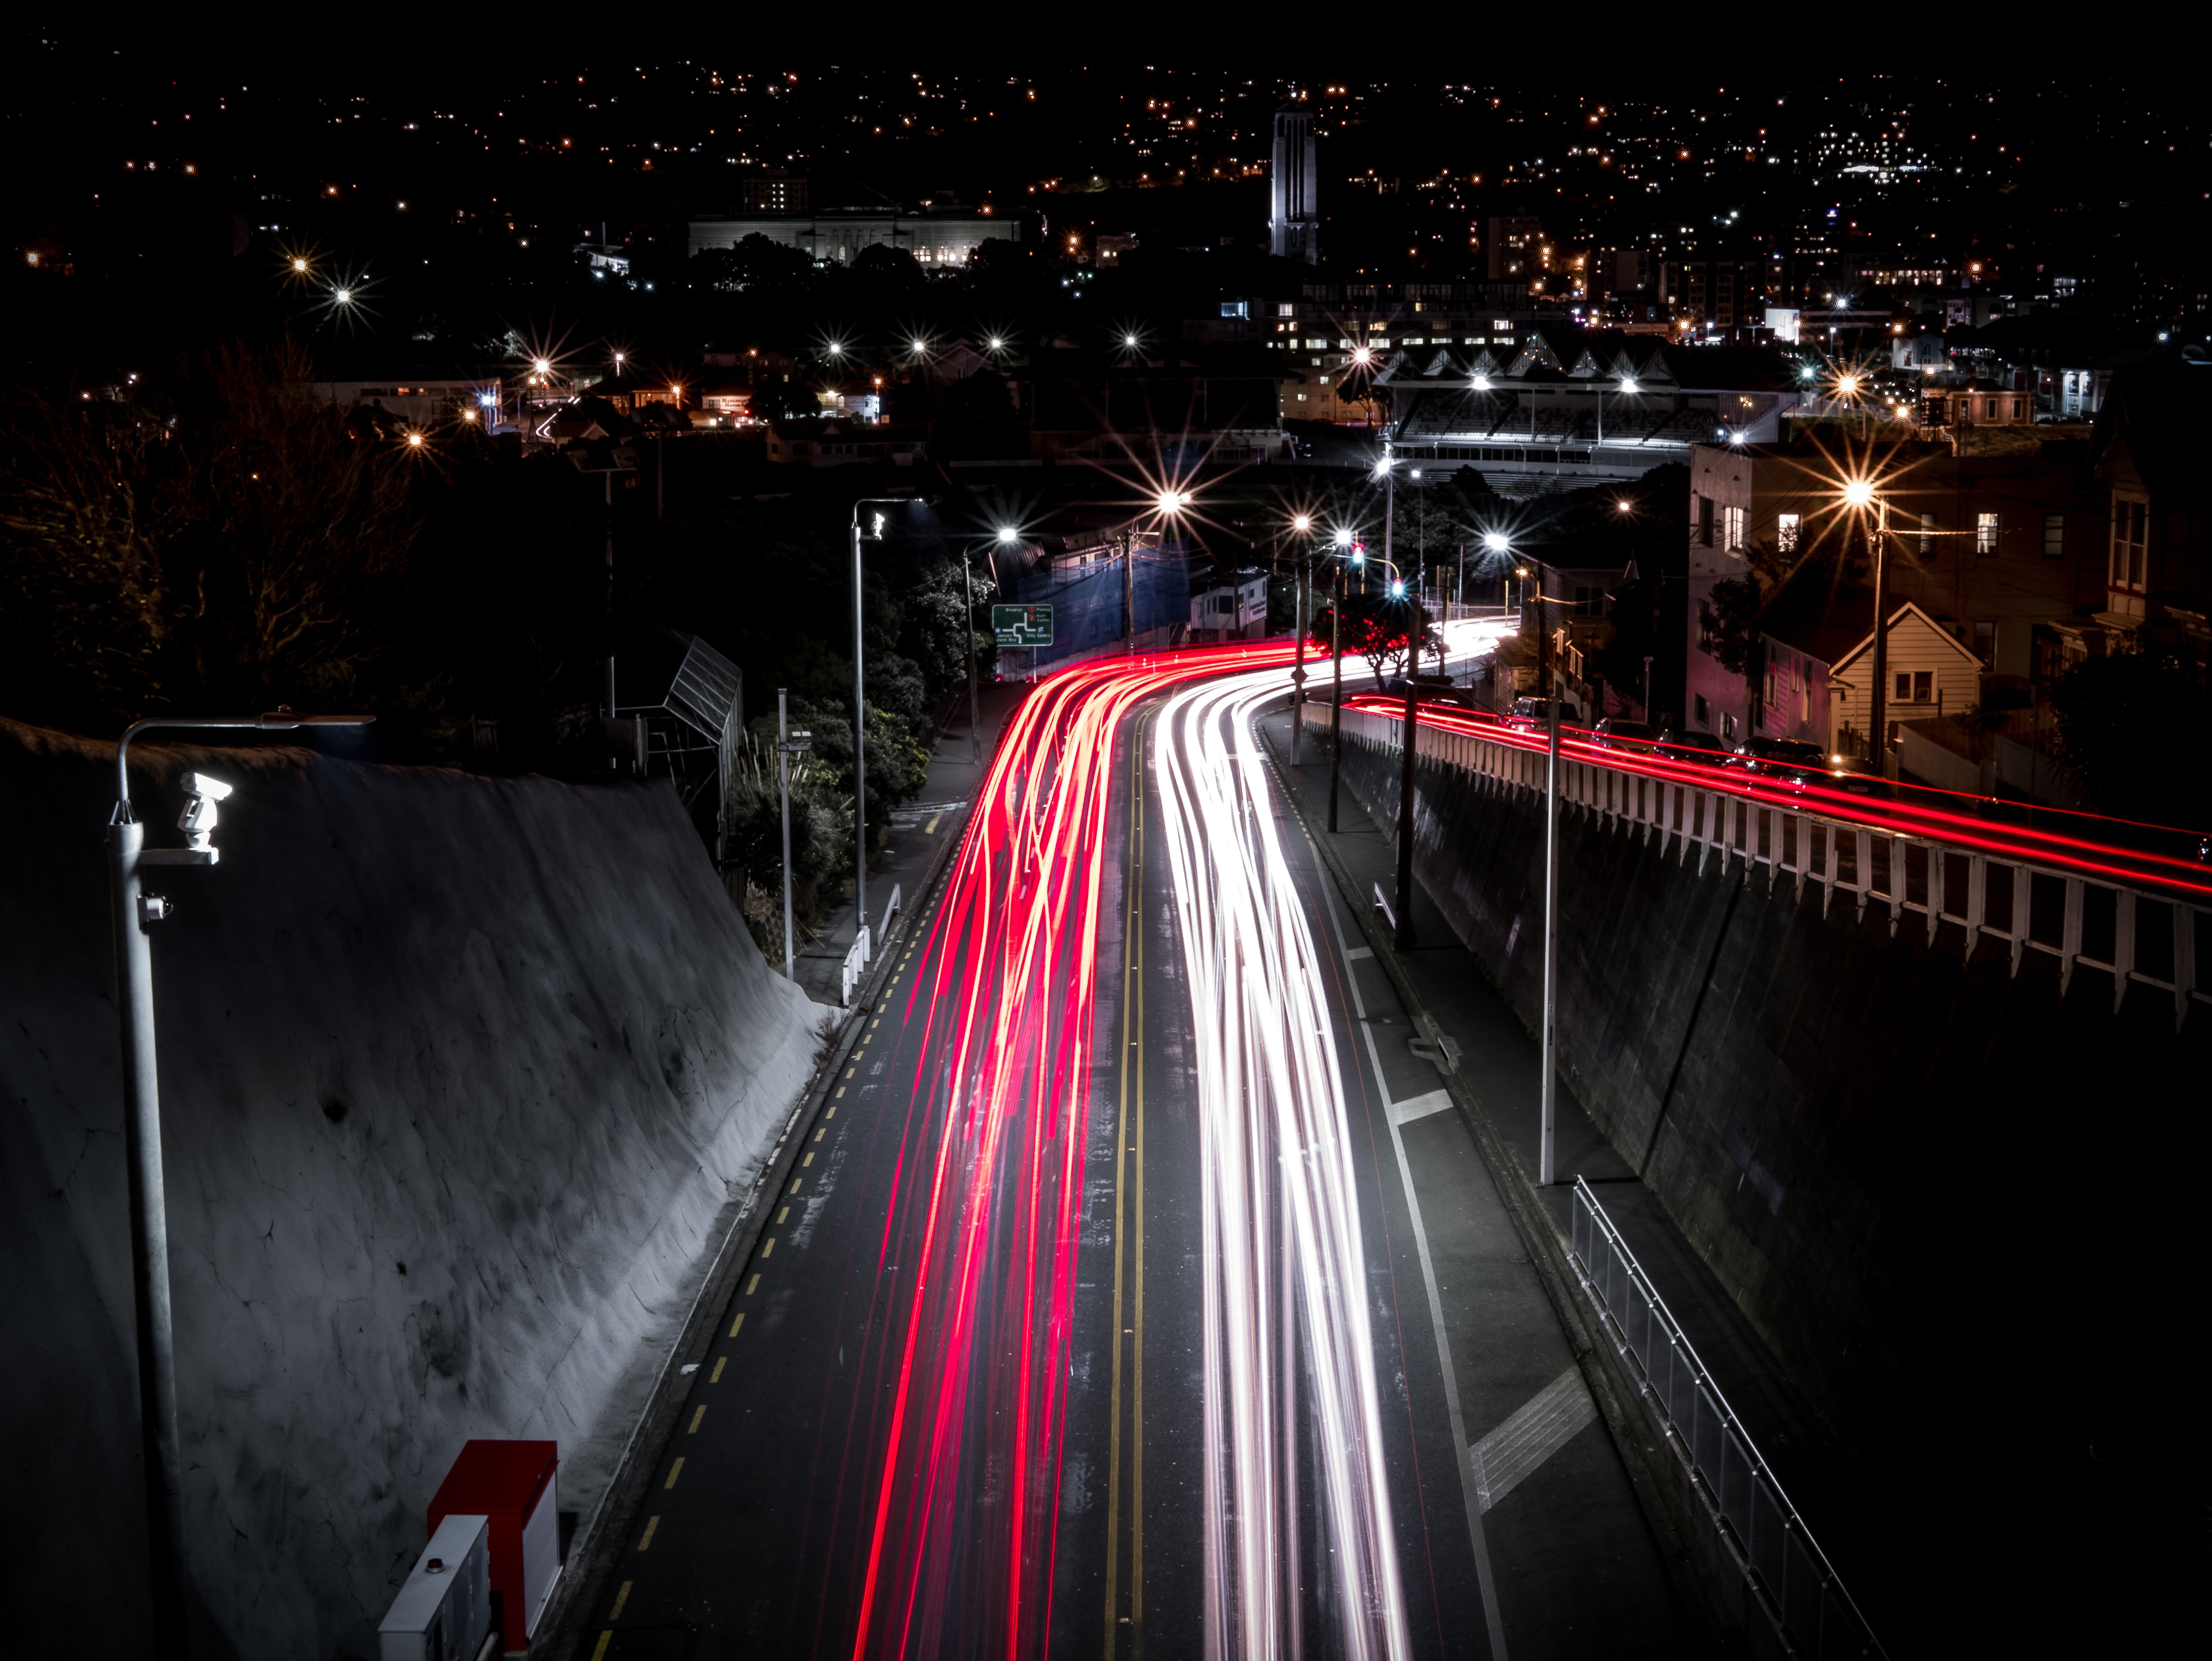 timelapse photography of vehicle taillights during night time